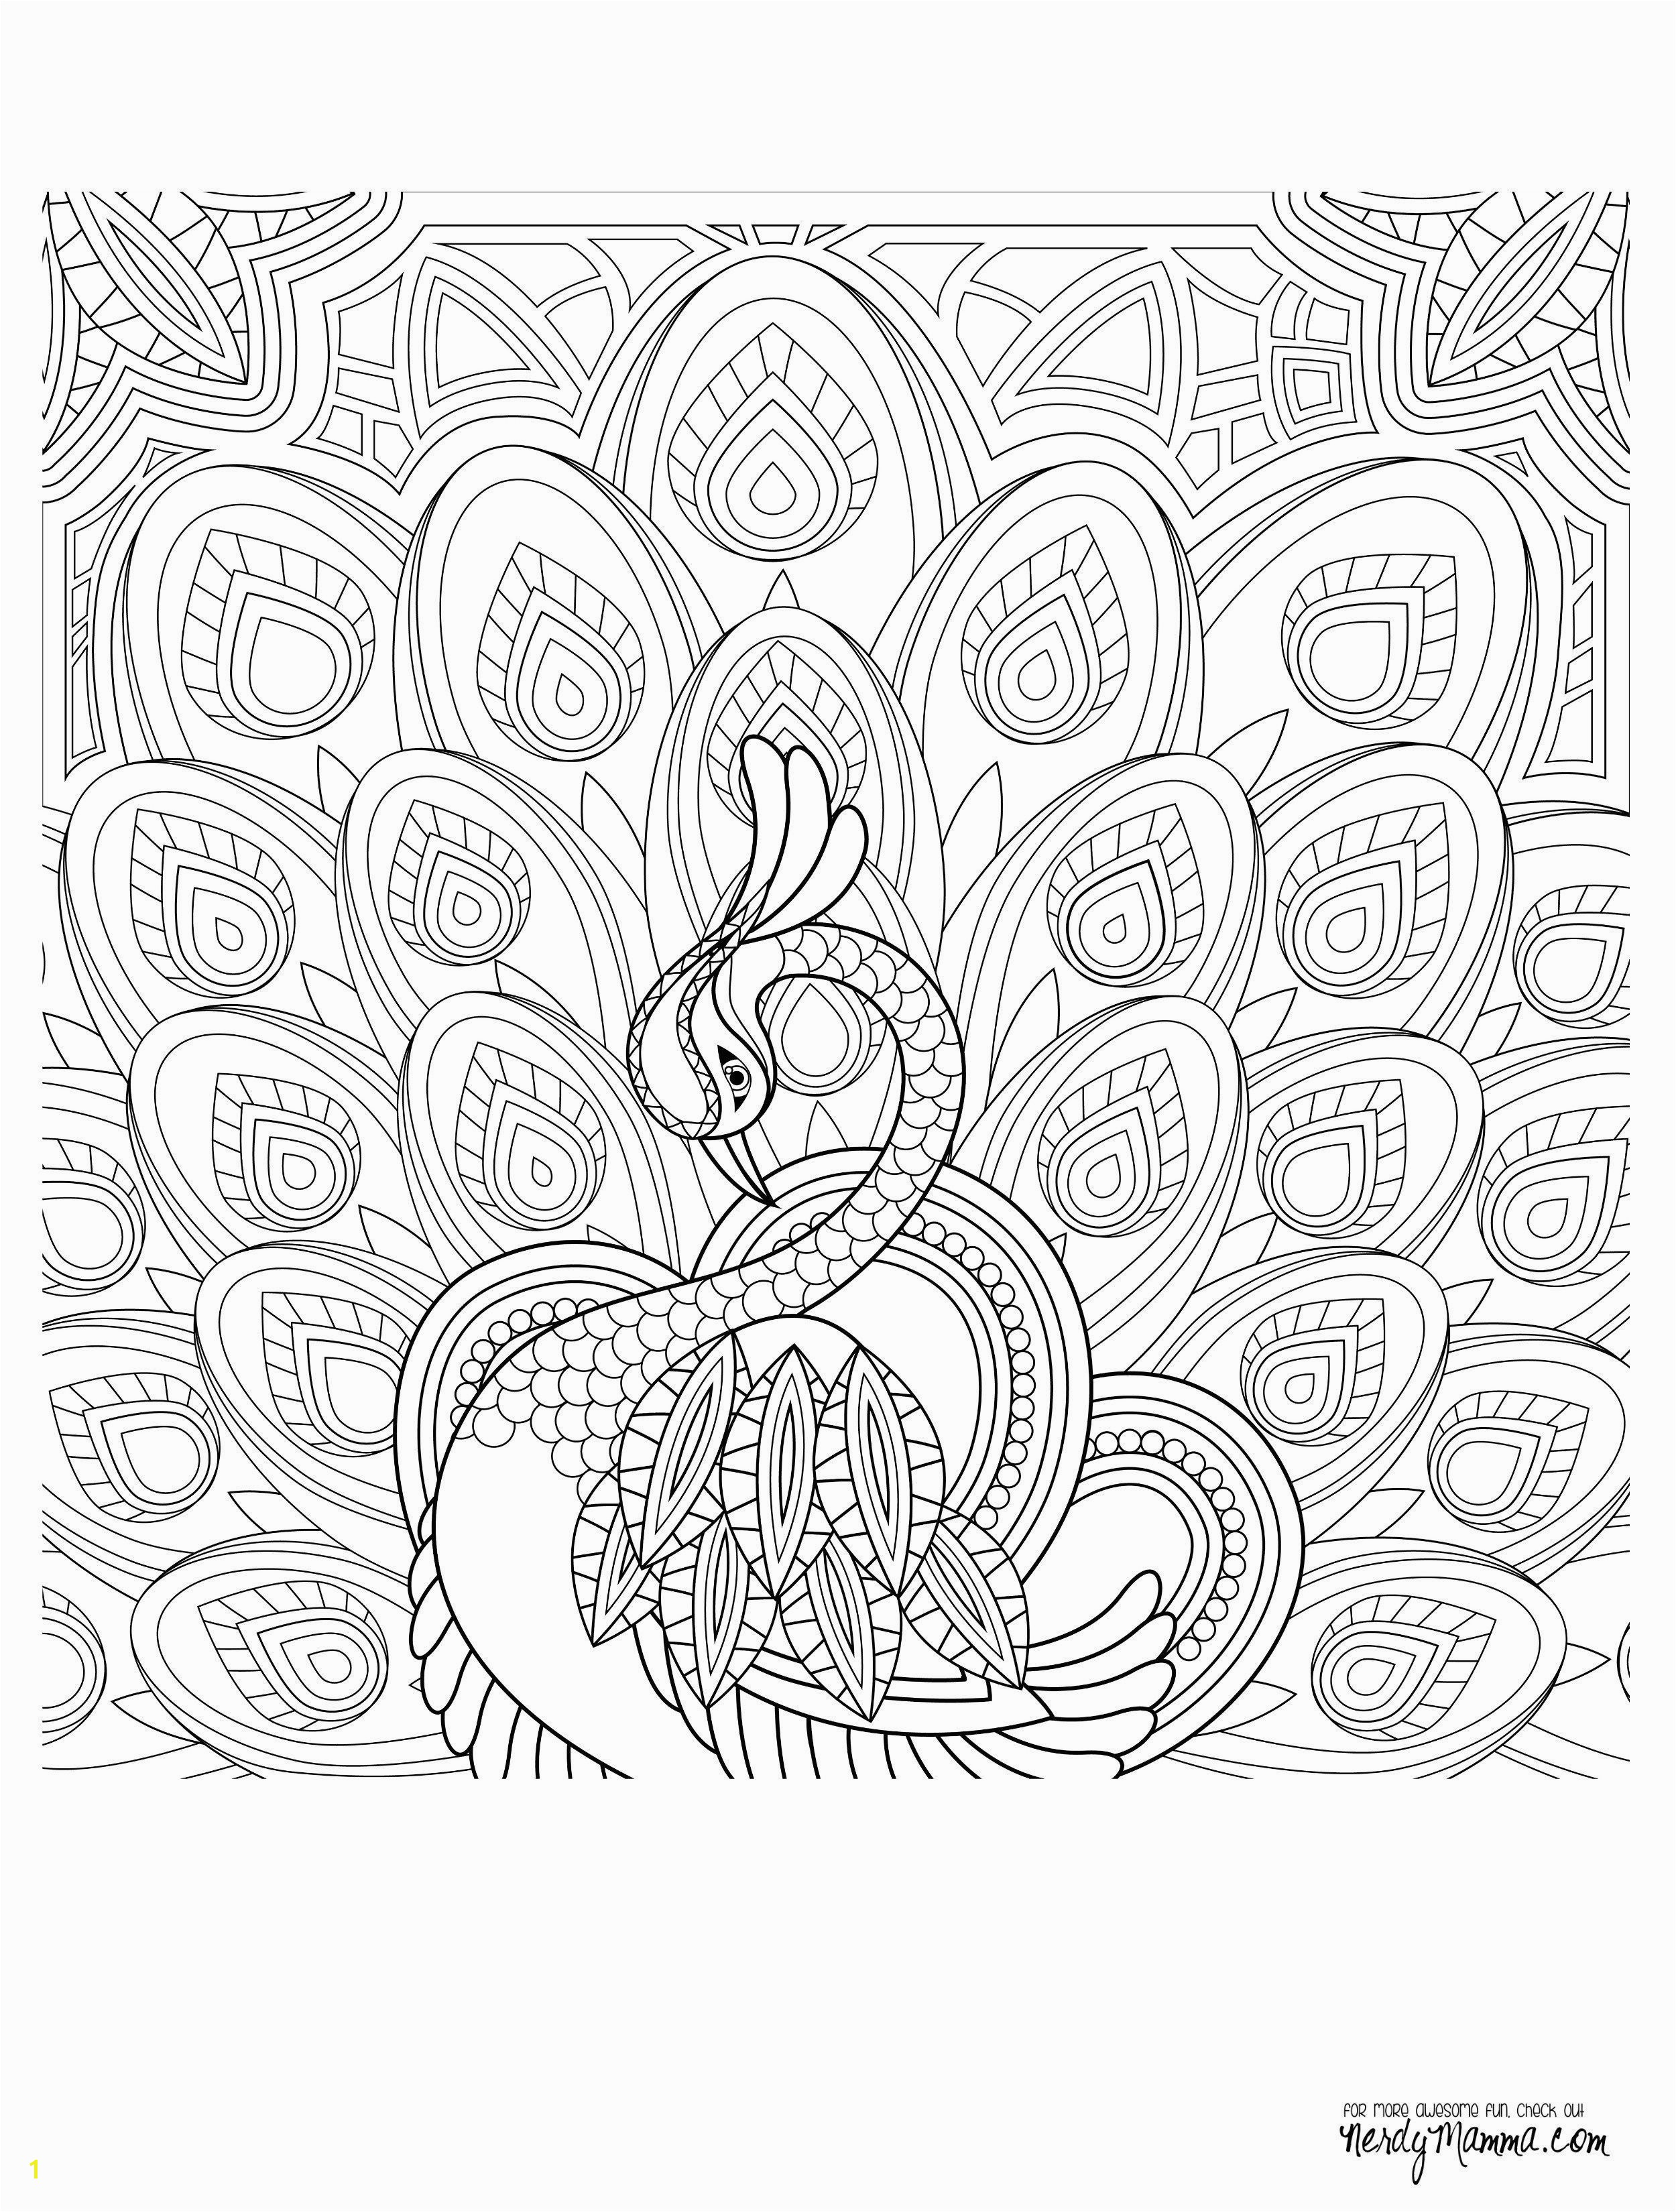 Halloween Coloring Pages For Adults 40 Elegant Image Halloween Coloring Pages For Adults